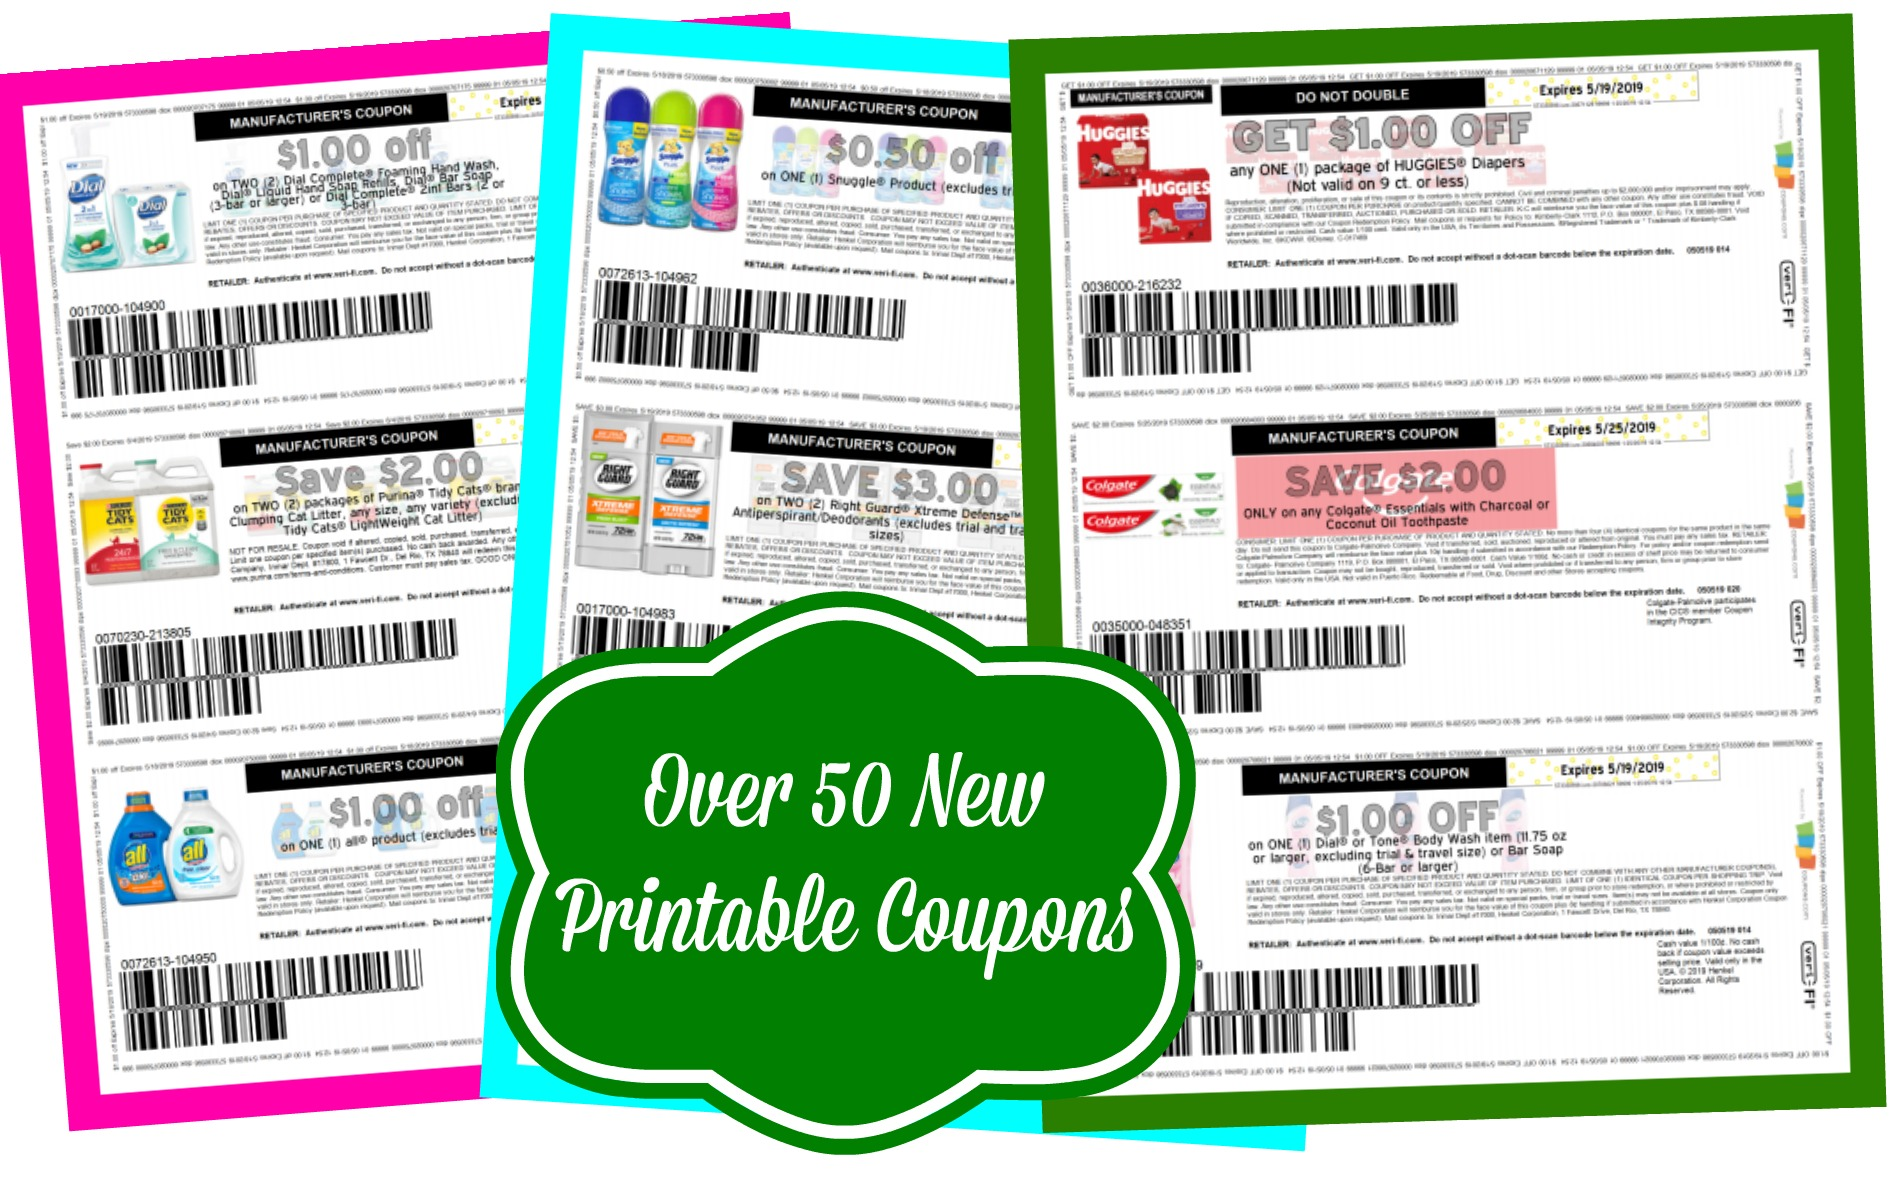 image relating to Huggies Printable Coupons named Previously mentioned 50 Refreshing Printable Discount codes ~ Dial, Huggies, Cheez-it and